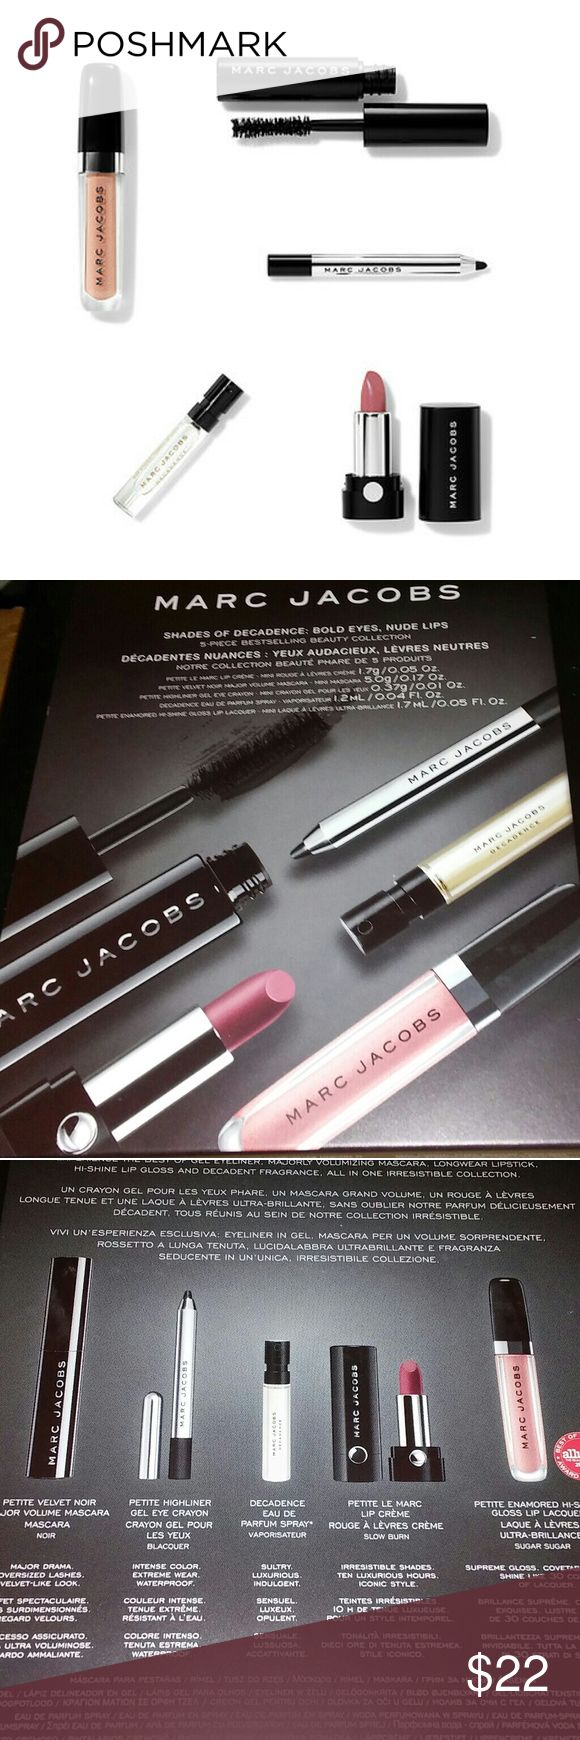 BNIB LE Marc Jacobs Shades of Decadence Set! Gift BNIB LE Marc Jacobs Shades of Decadence 5 Piece Collection. This would make an amazing stocking stuffer or white elephant gift! More: Touch-up on the go with this must-have collection of five minis from Marc Jacobs Beauty, including ultra-volumizing mascara, an intense waterproof eyeliner, a creamy 10-hour lipstick, a high-shine gloss, and a floral Eau De Parfum.  #marcjacobs #decadence #highliner #eyeliner #mascara #lipcreme #liplacquer…